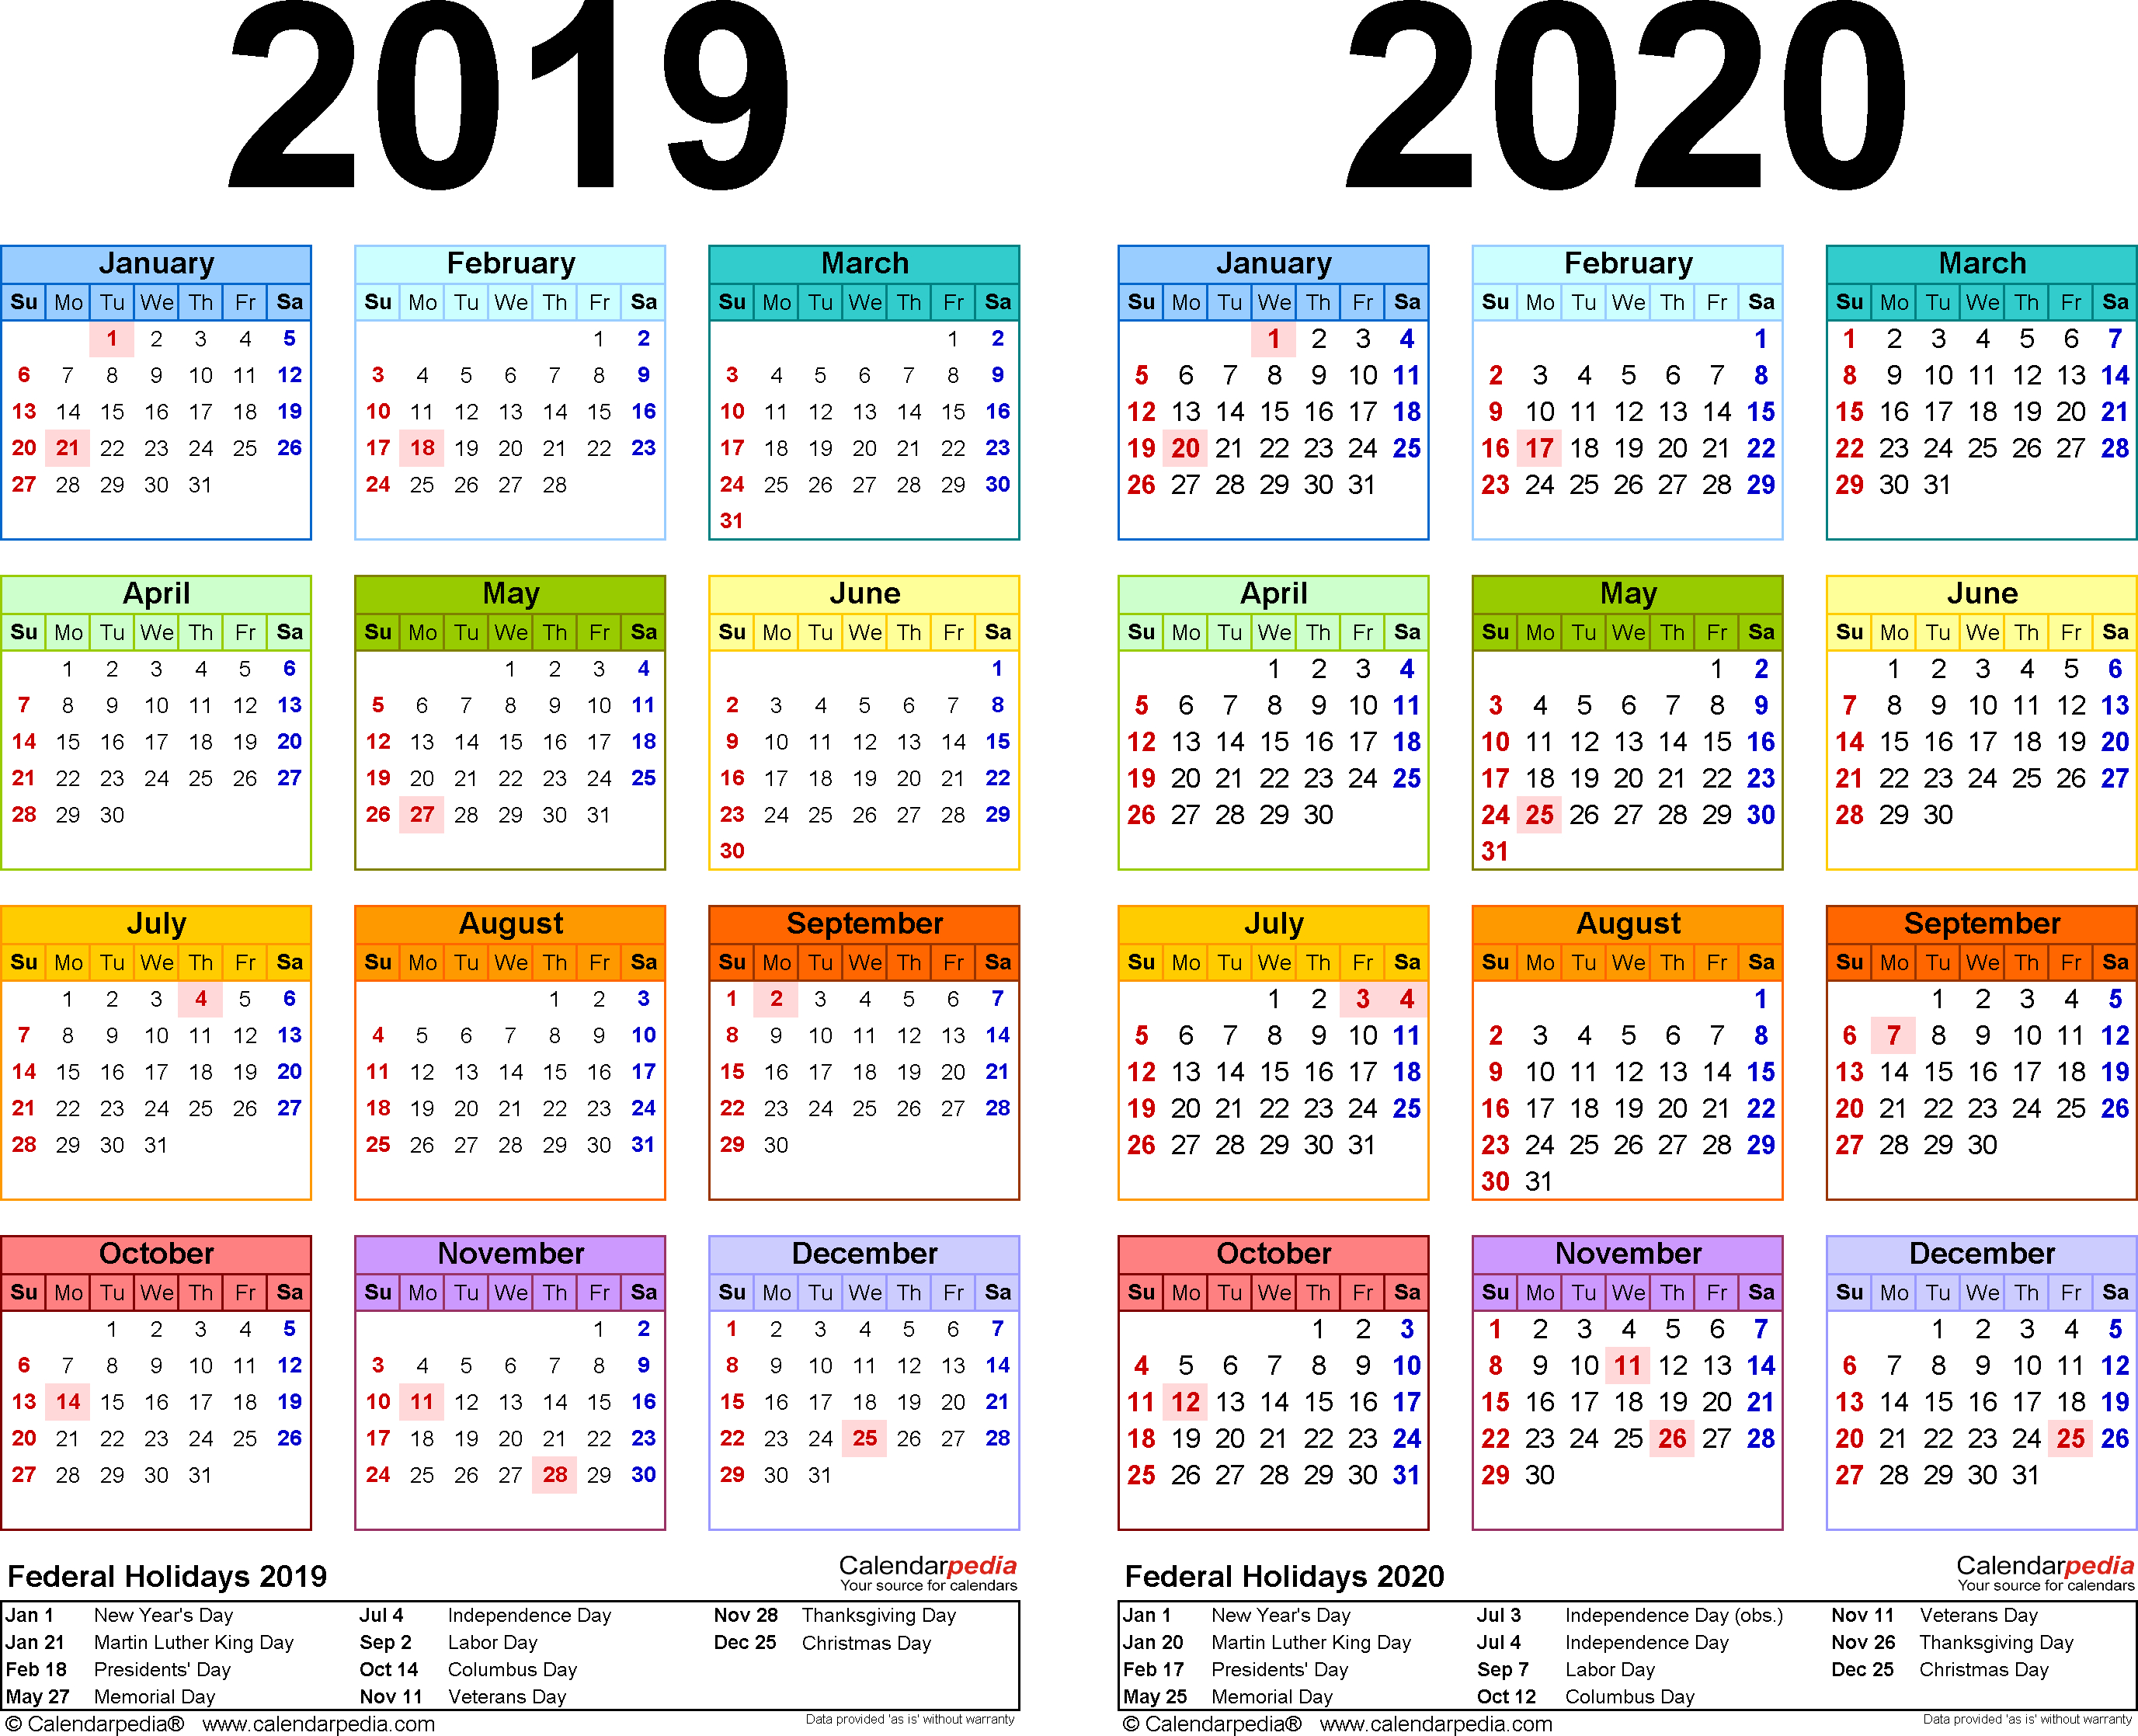 2019-2020 Calendar - Free Printable Two-Year Word Calendars intended for One Page Yearly Calendar 2019-2020